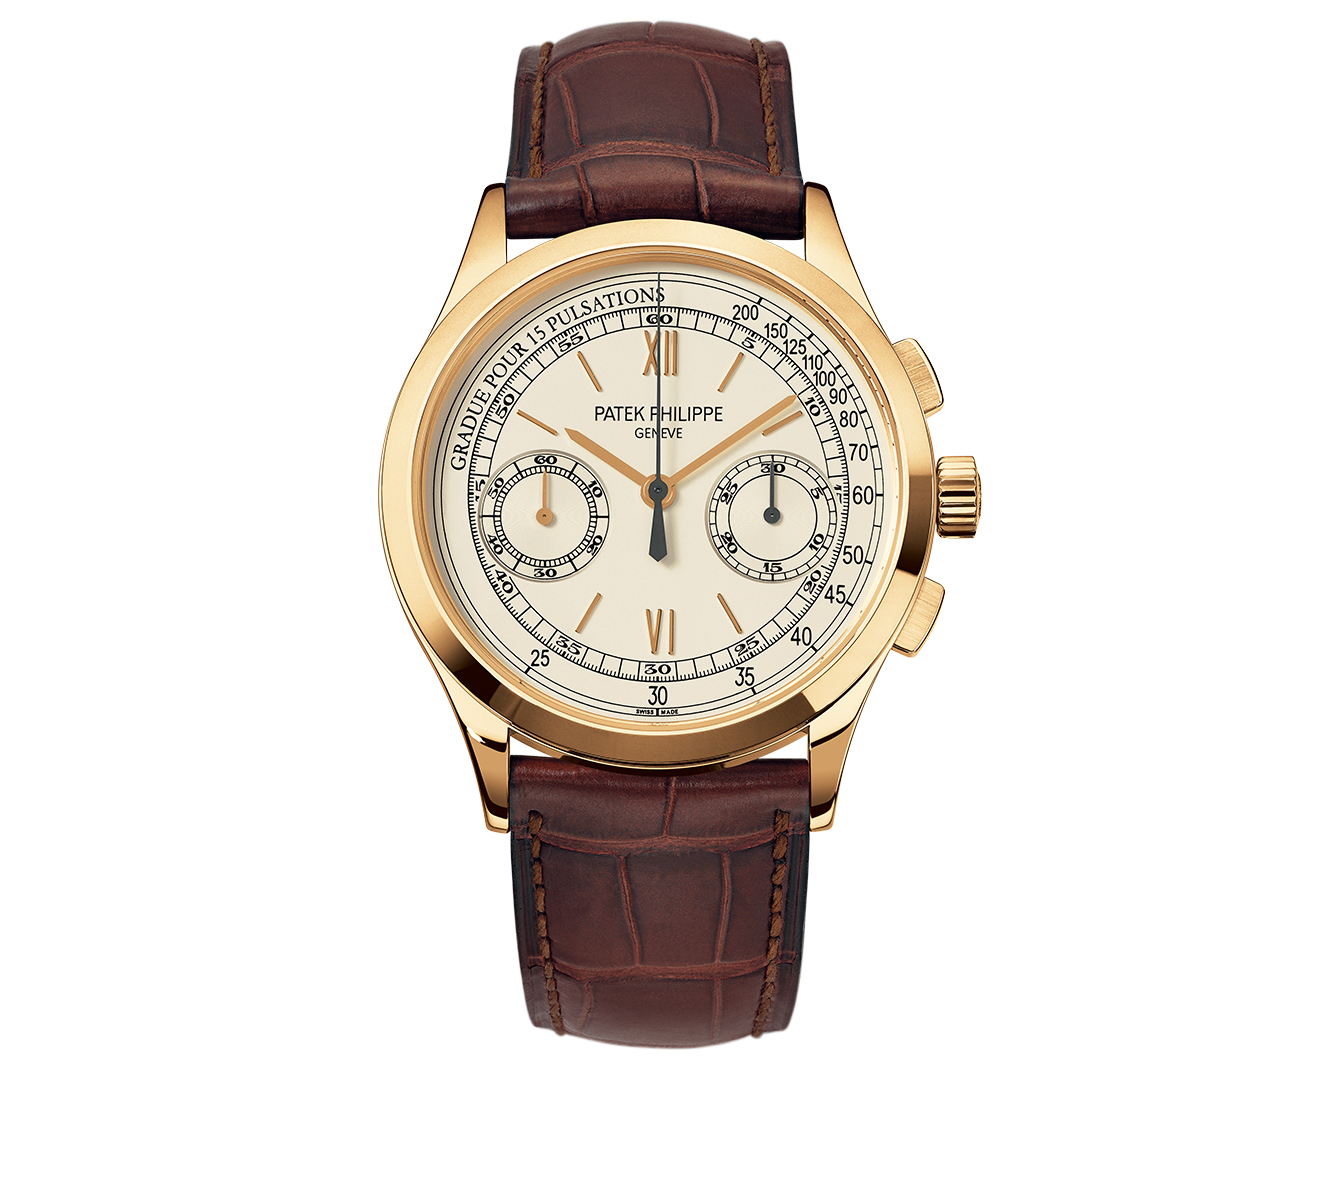 Часы Chronograph PATEK PHILIPPE Complications 5170 J-001 - фото 1 – Mercury